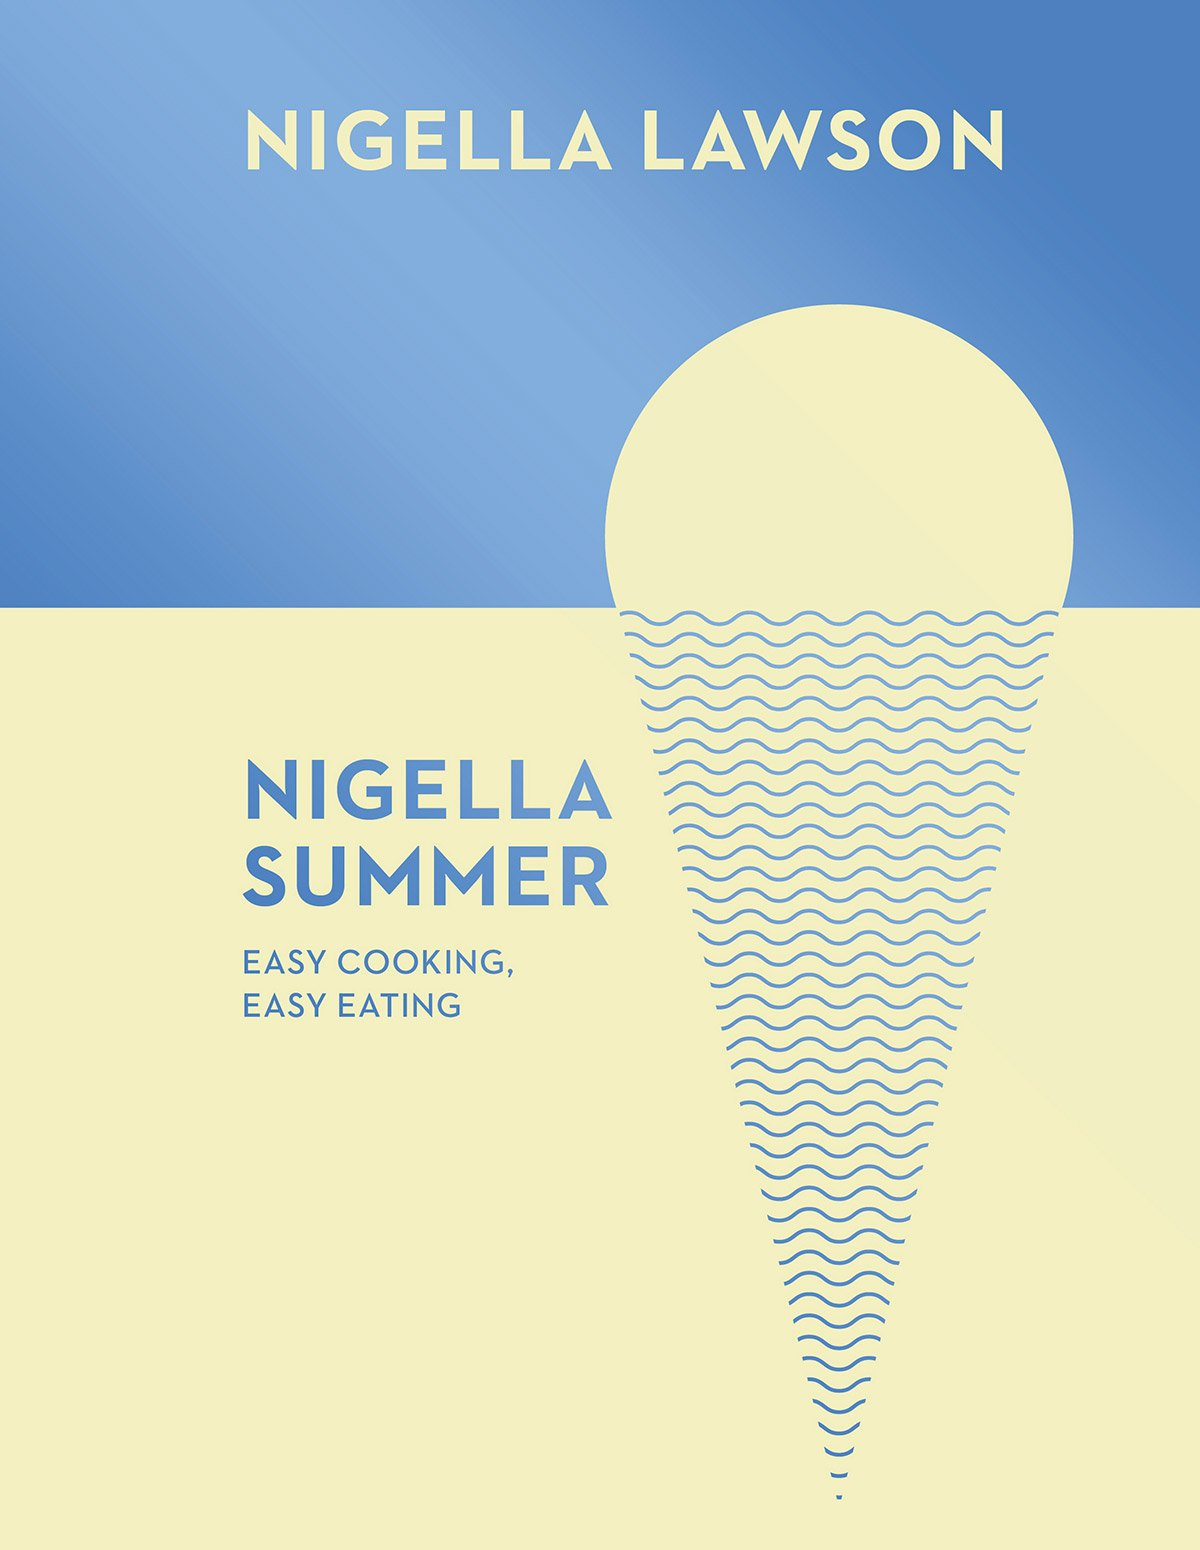 NIGELLA SUMMER UK book cover